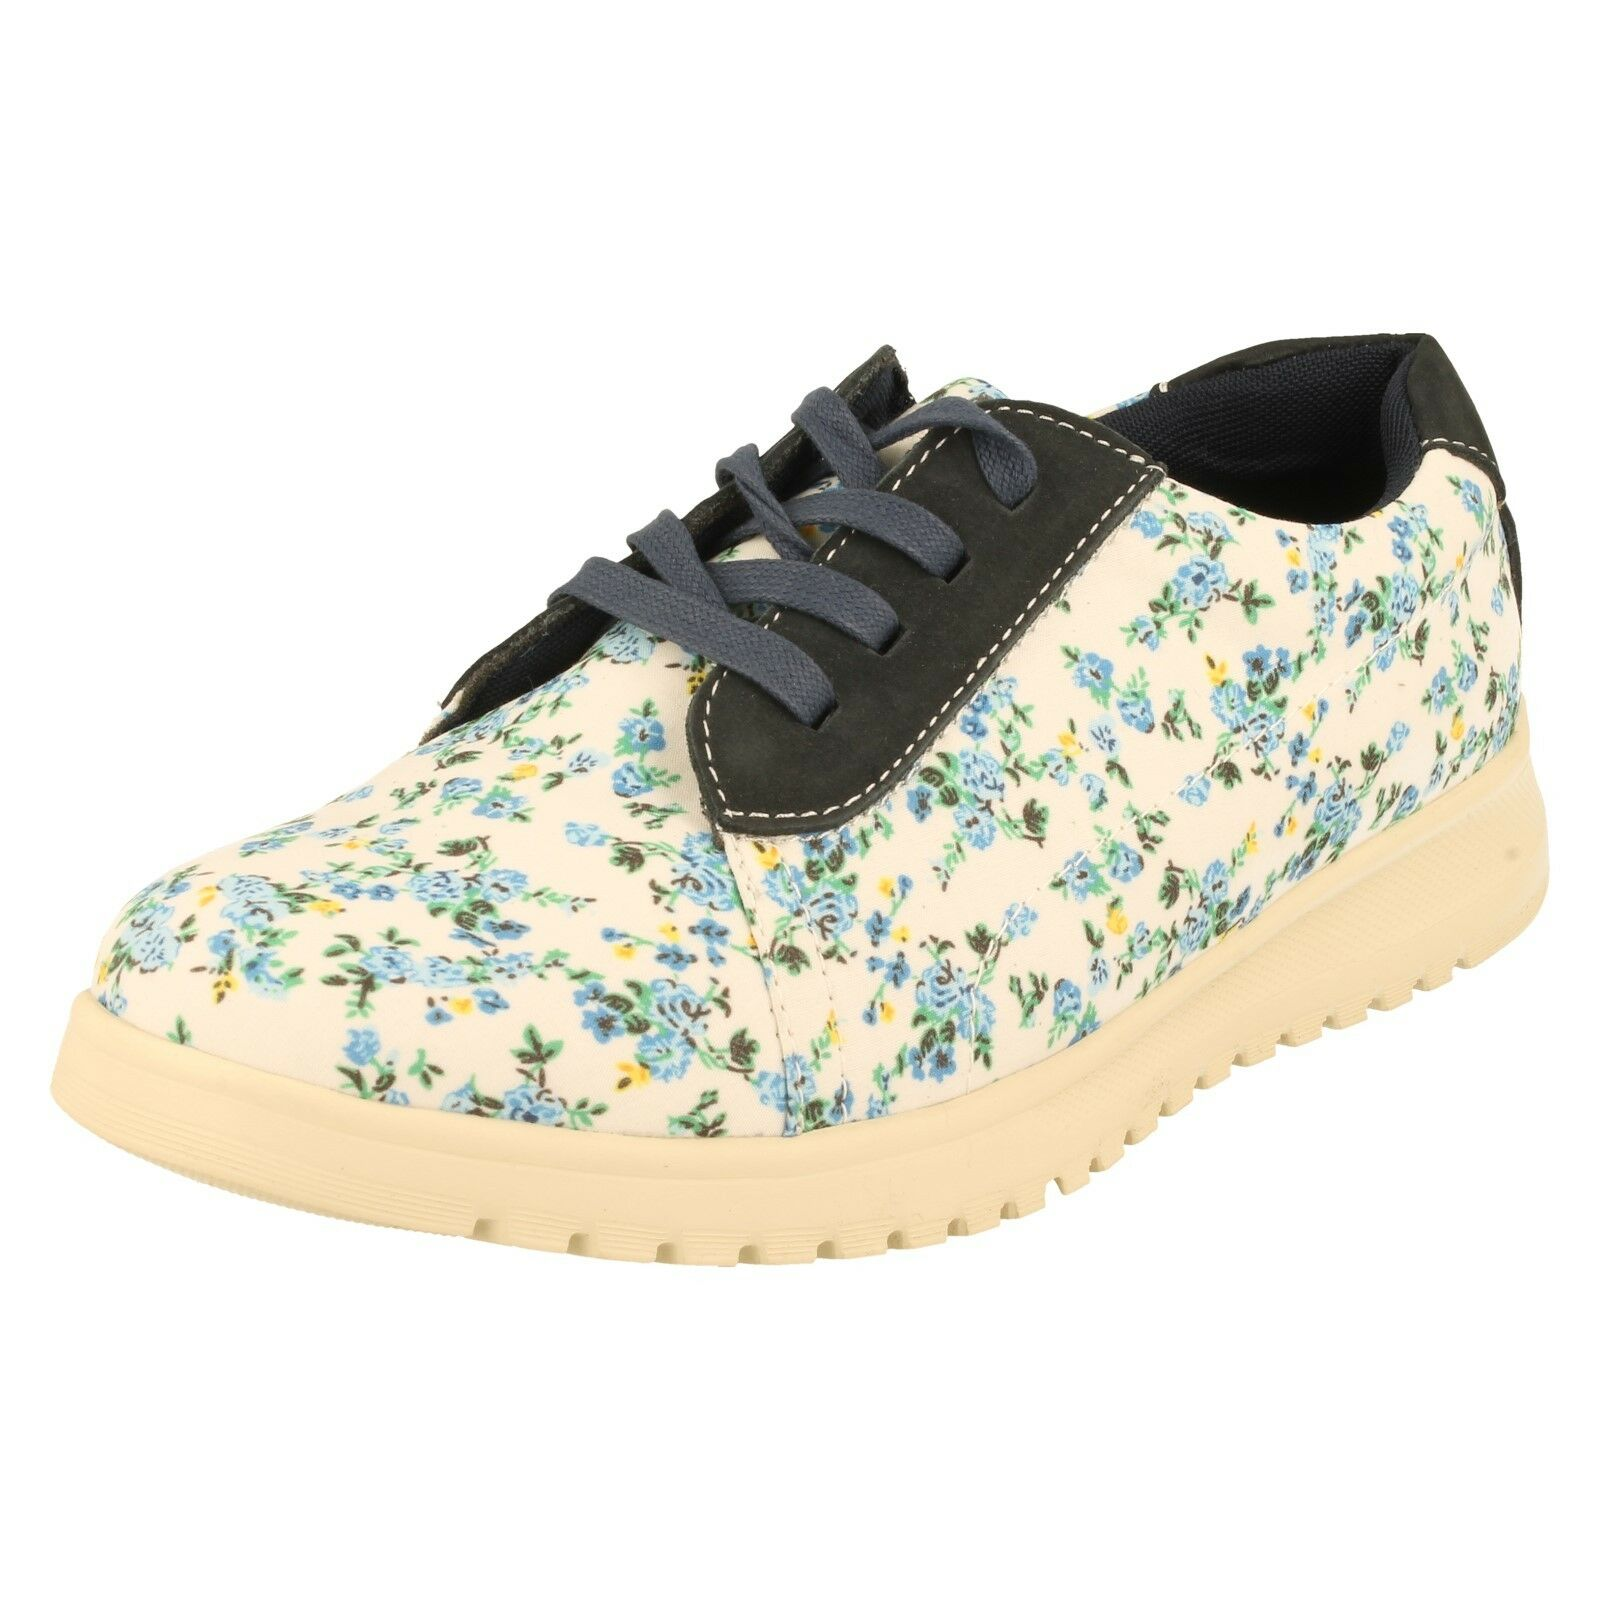 mujer Padders  Zapatos re-  - re- Zapatos Flor 603fd8